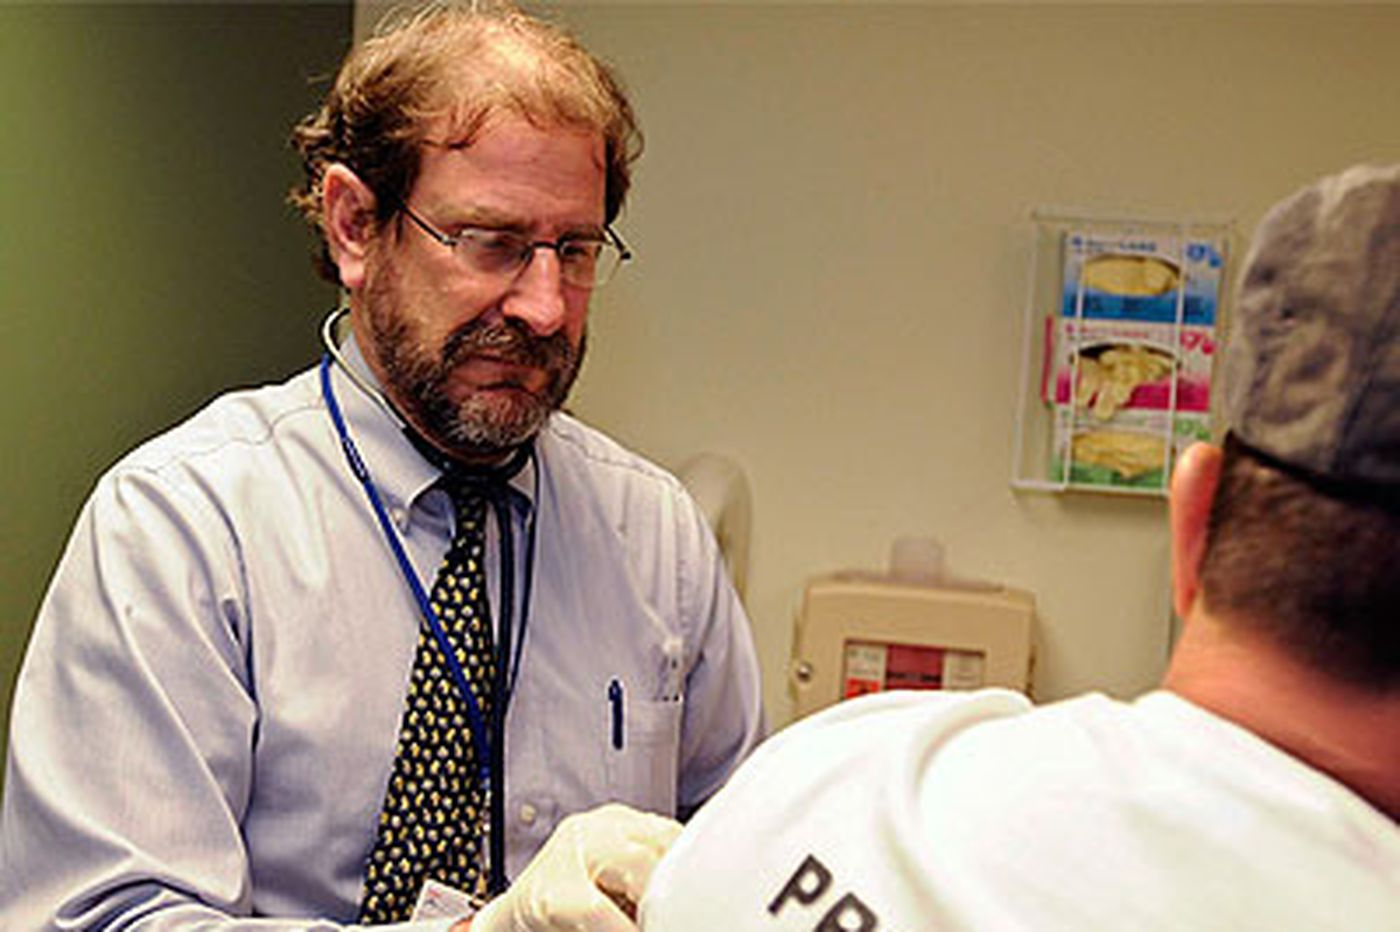 New hope for rising tide of boomers with hepatitis C